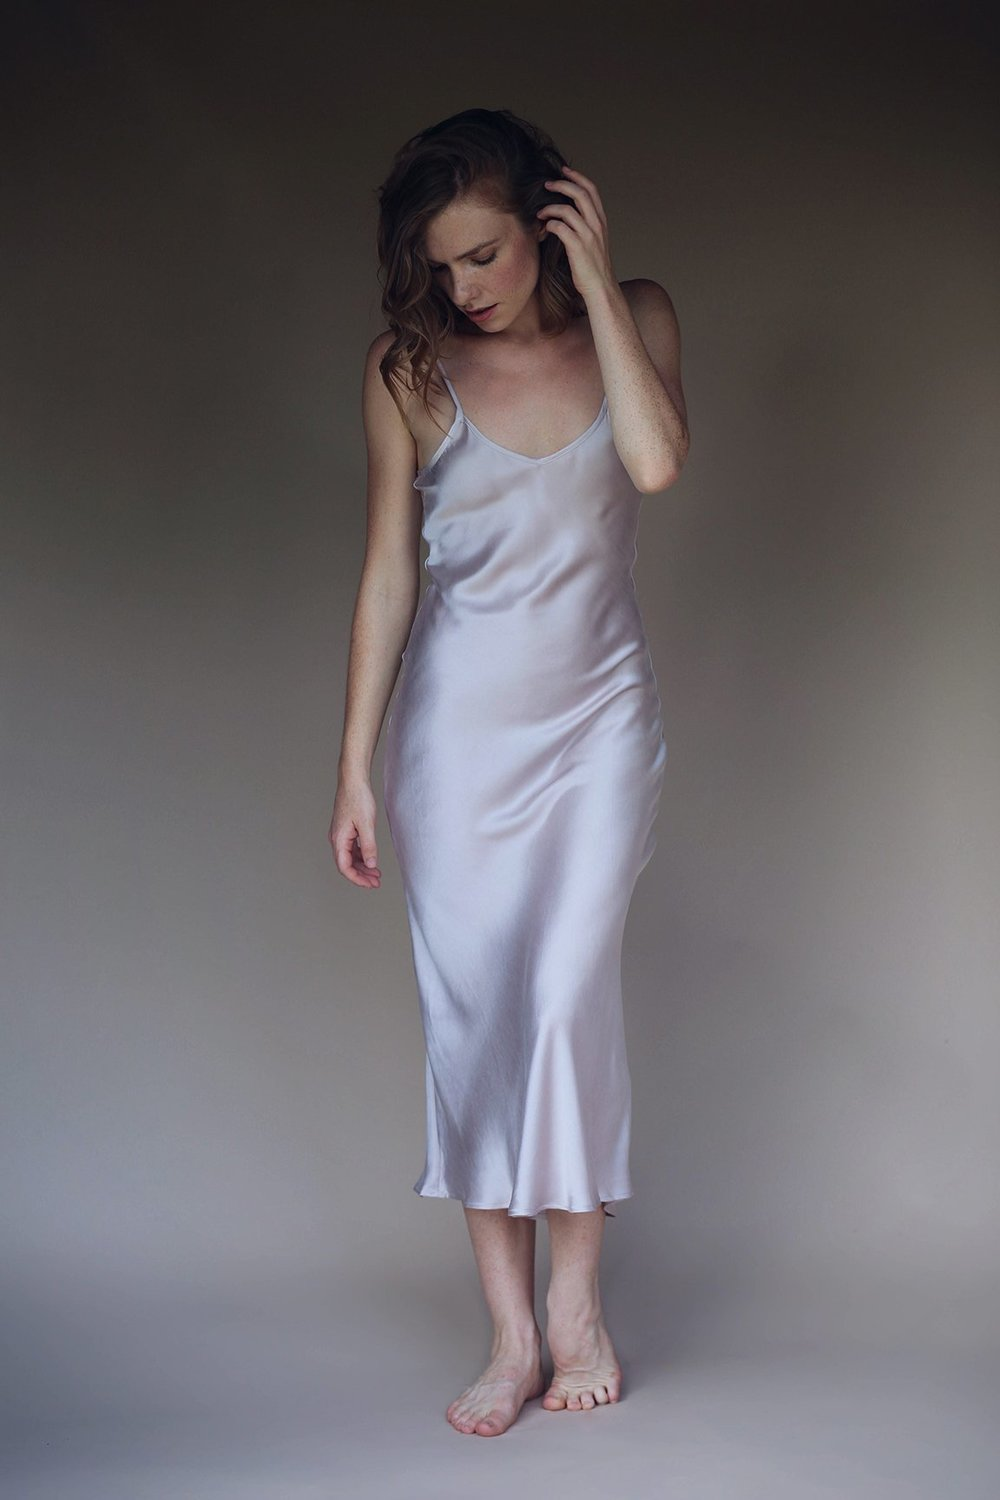 Doyenne the Label - Turn Heads at Your New Years Party With This timeless, Ethical Brand